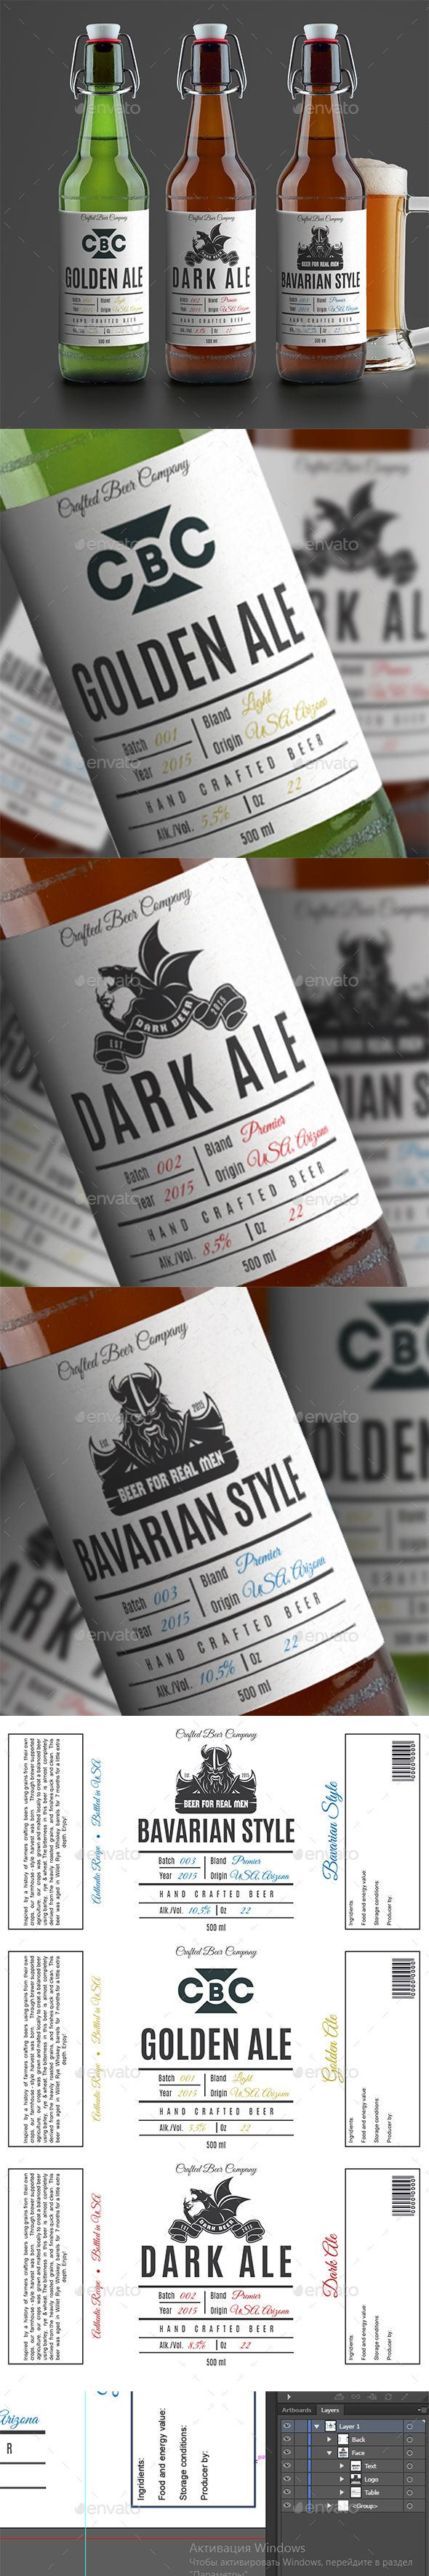 Beer Label Template PSD, Vector EPS, AI. Download here: http://graphicriver.net/item/beer-label/15649926?ref=ksioks